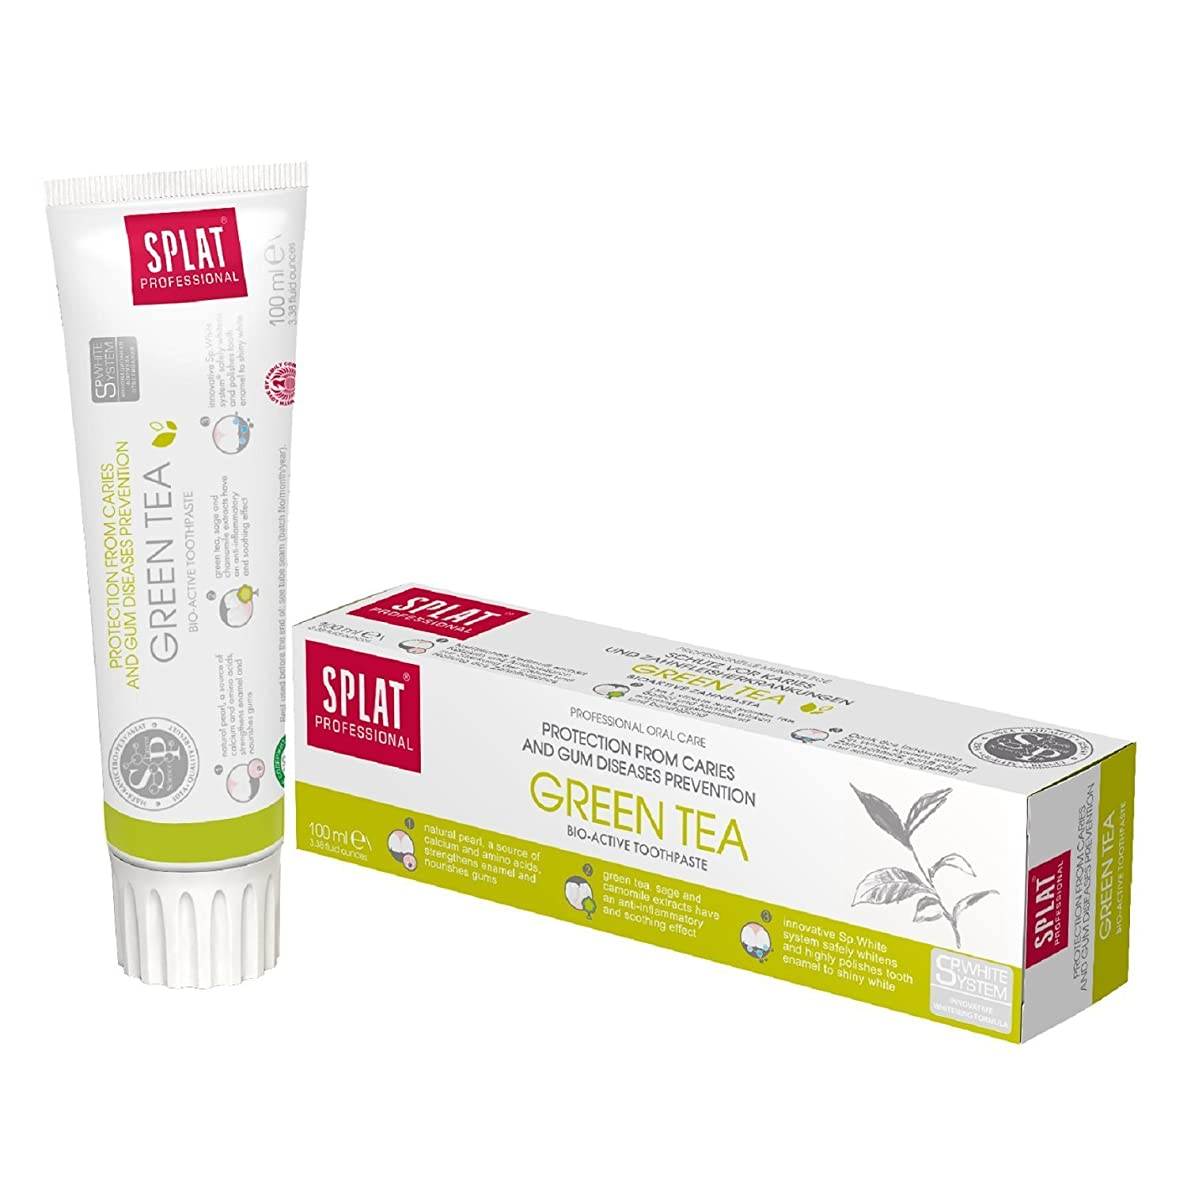 私達お父さん提供されたToothpaste Splat Professional 100ml (Green tea)